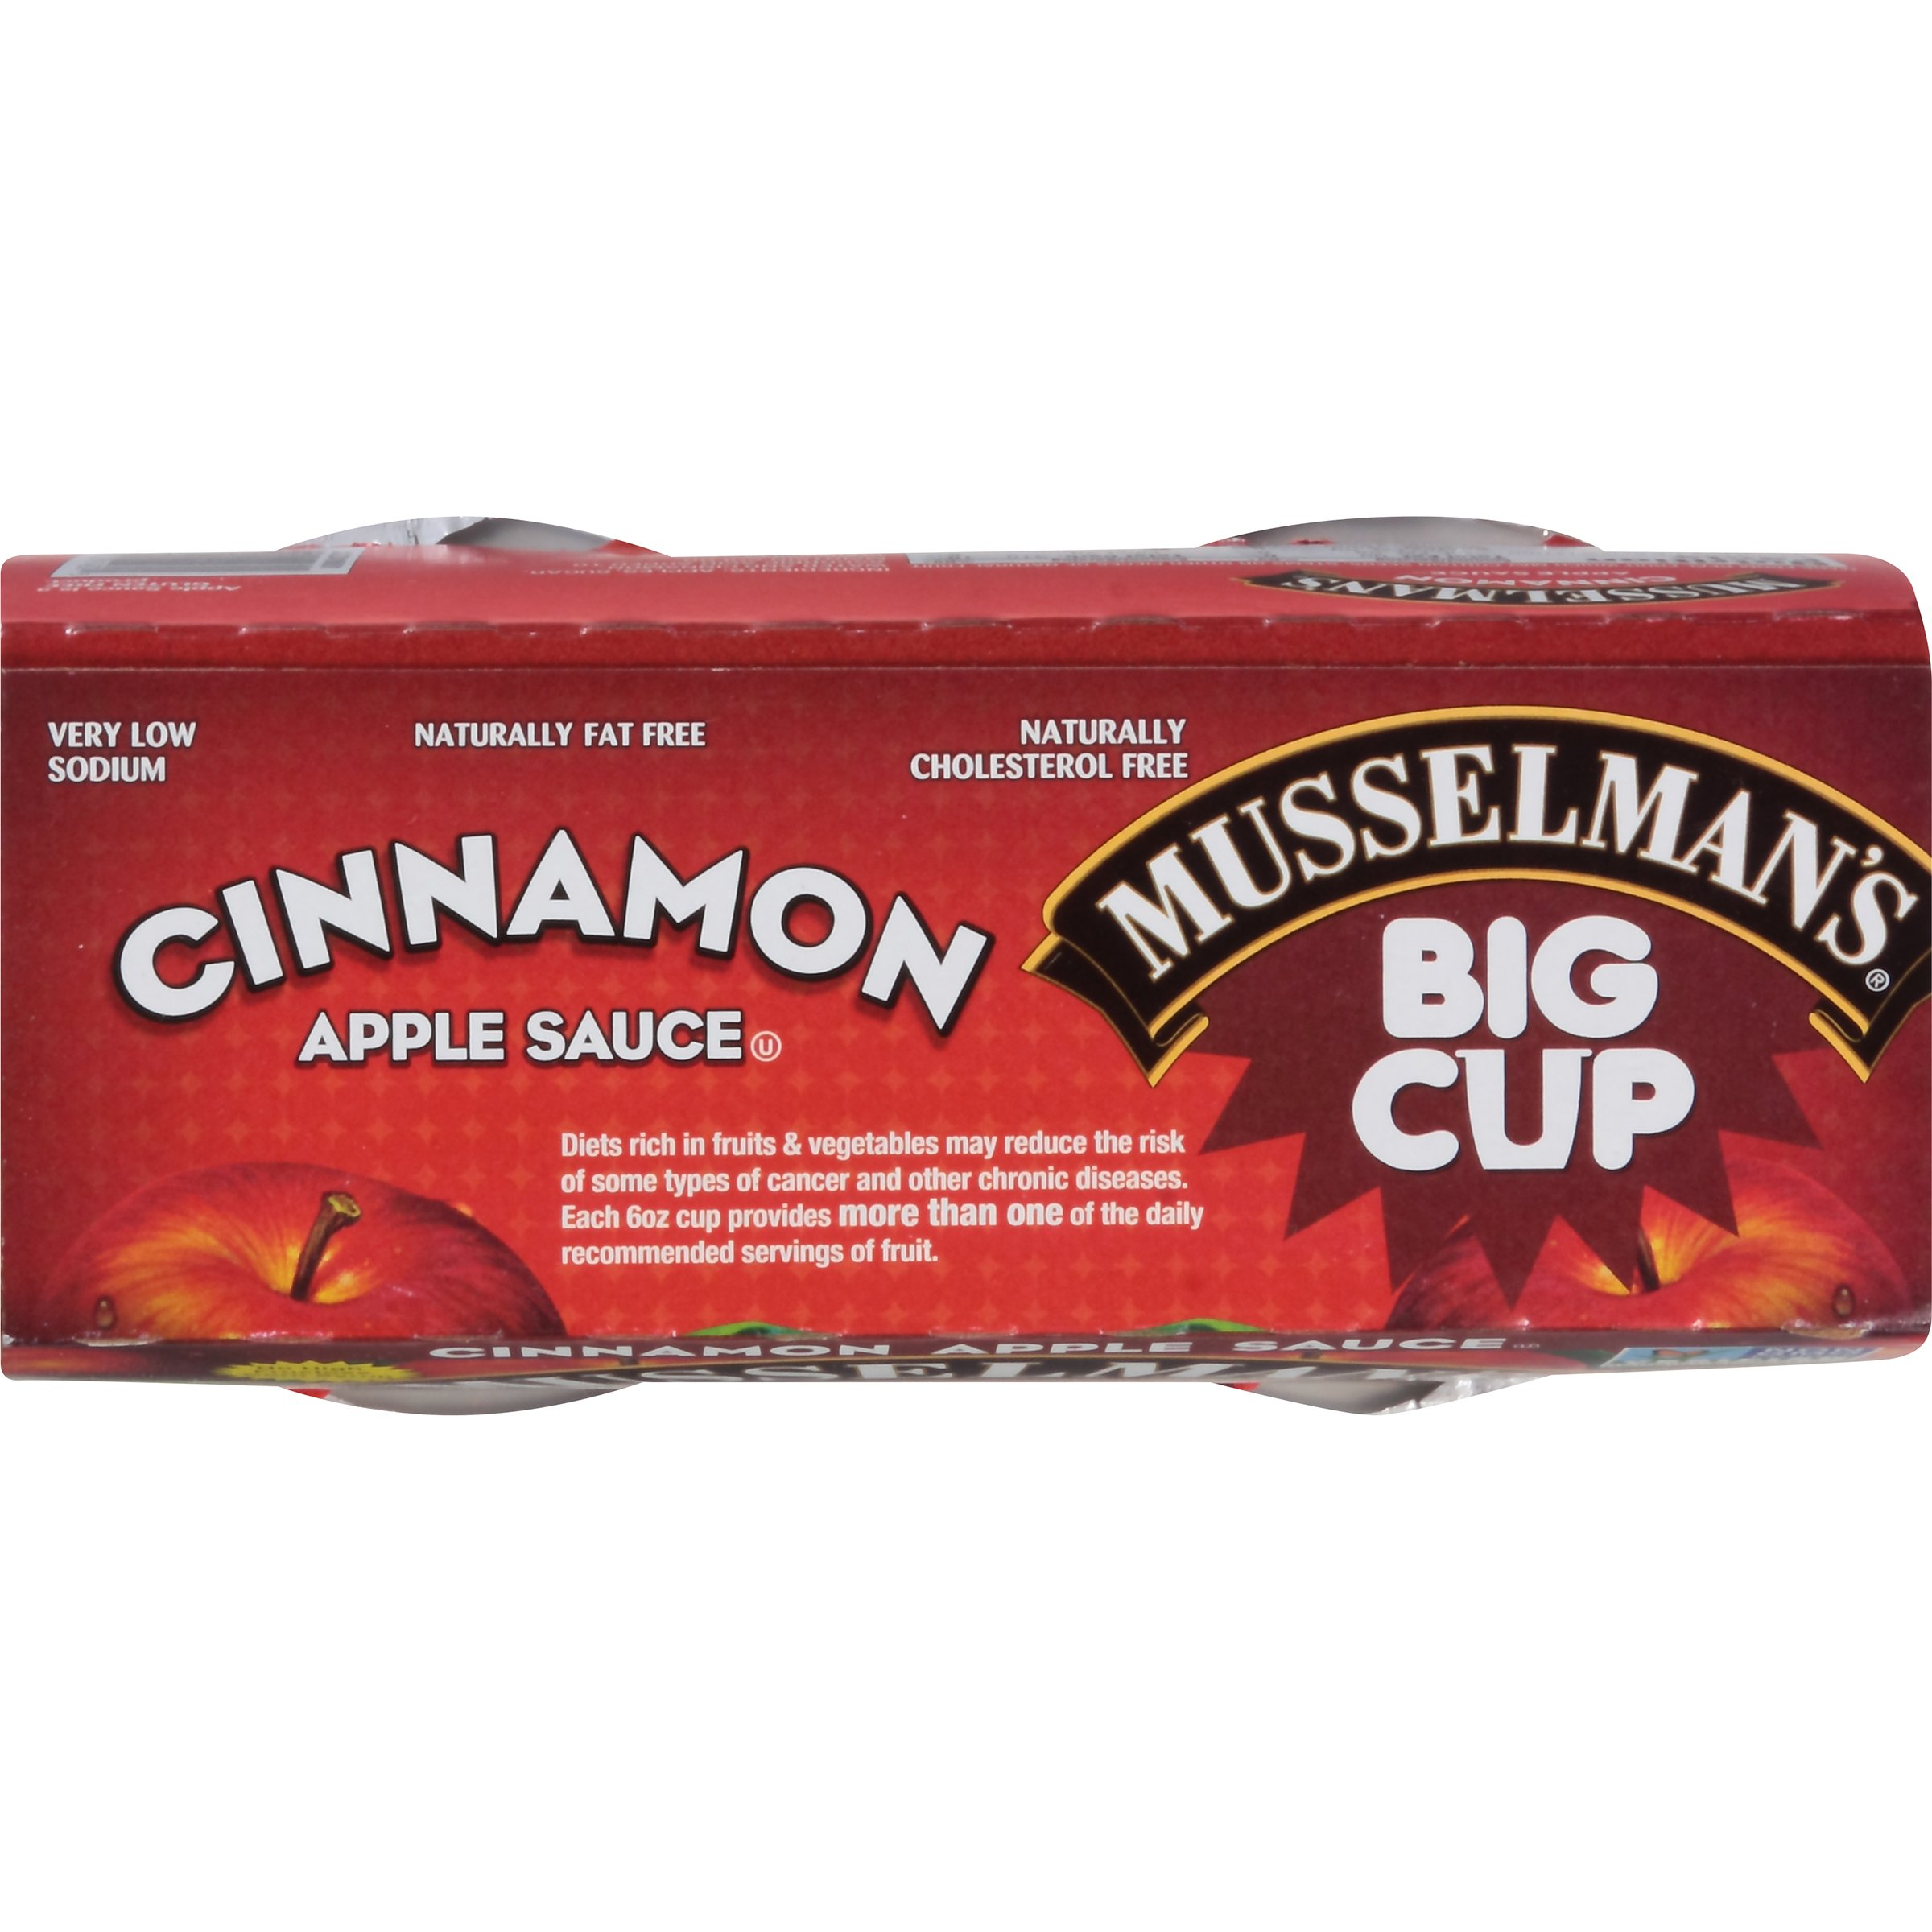 Musselman's Big Cup Cinnamon Apple Sauce, 6 Ounce (Pack of 12) by Musselmans (Image #1)